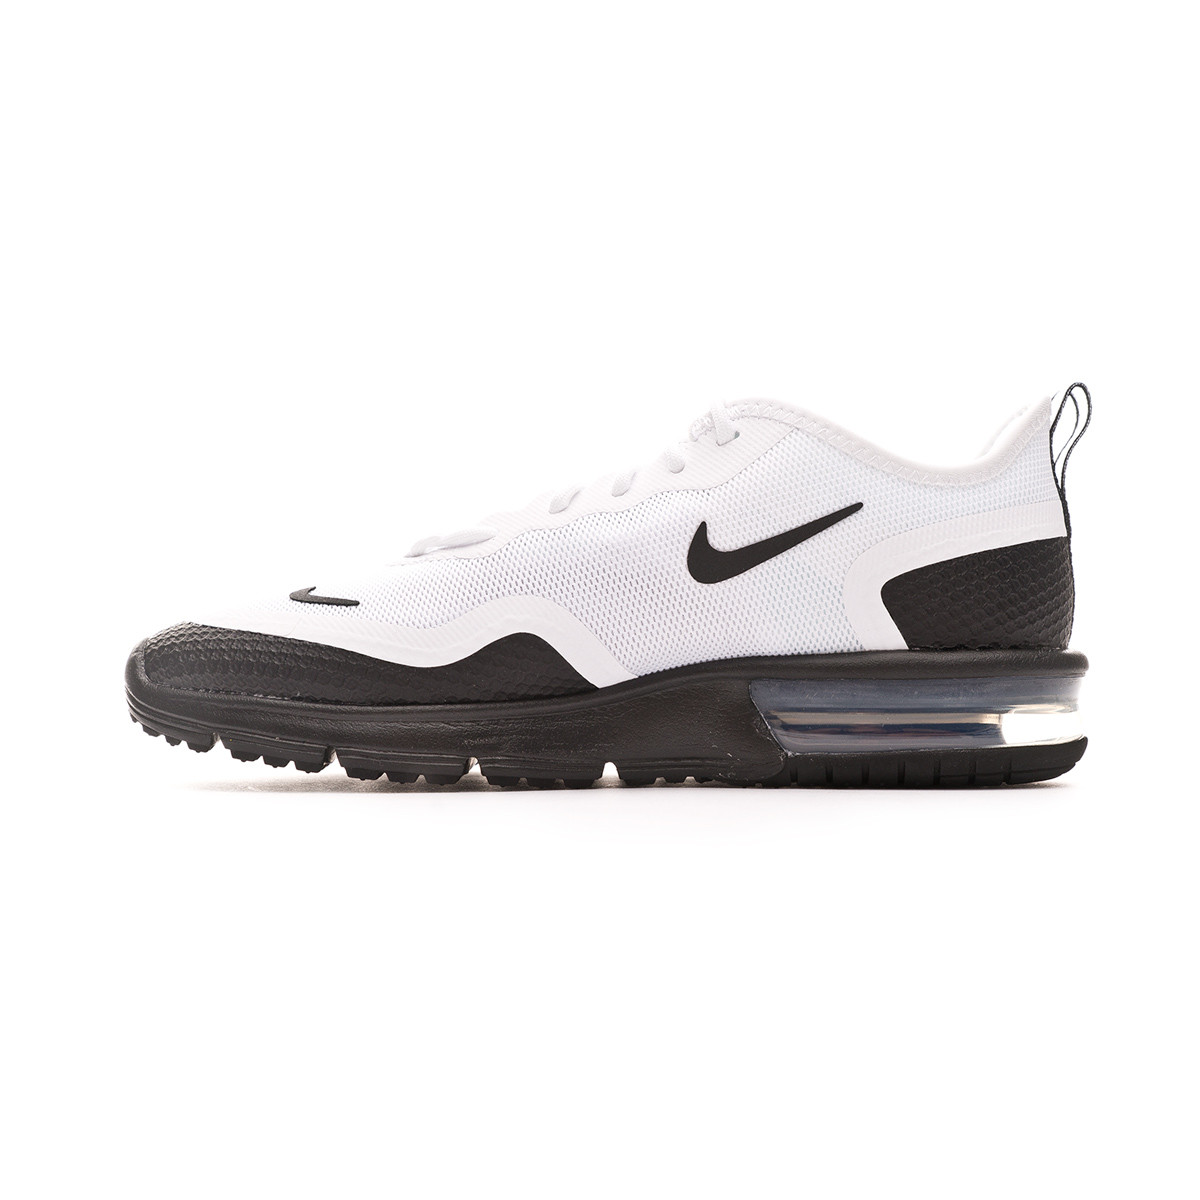 visitante Trampolín Padre  Trainers Nike Air Max Sequent 4,5 White-Black - Football store ...